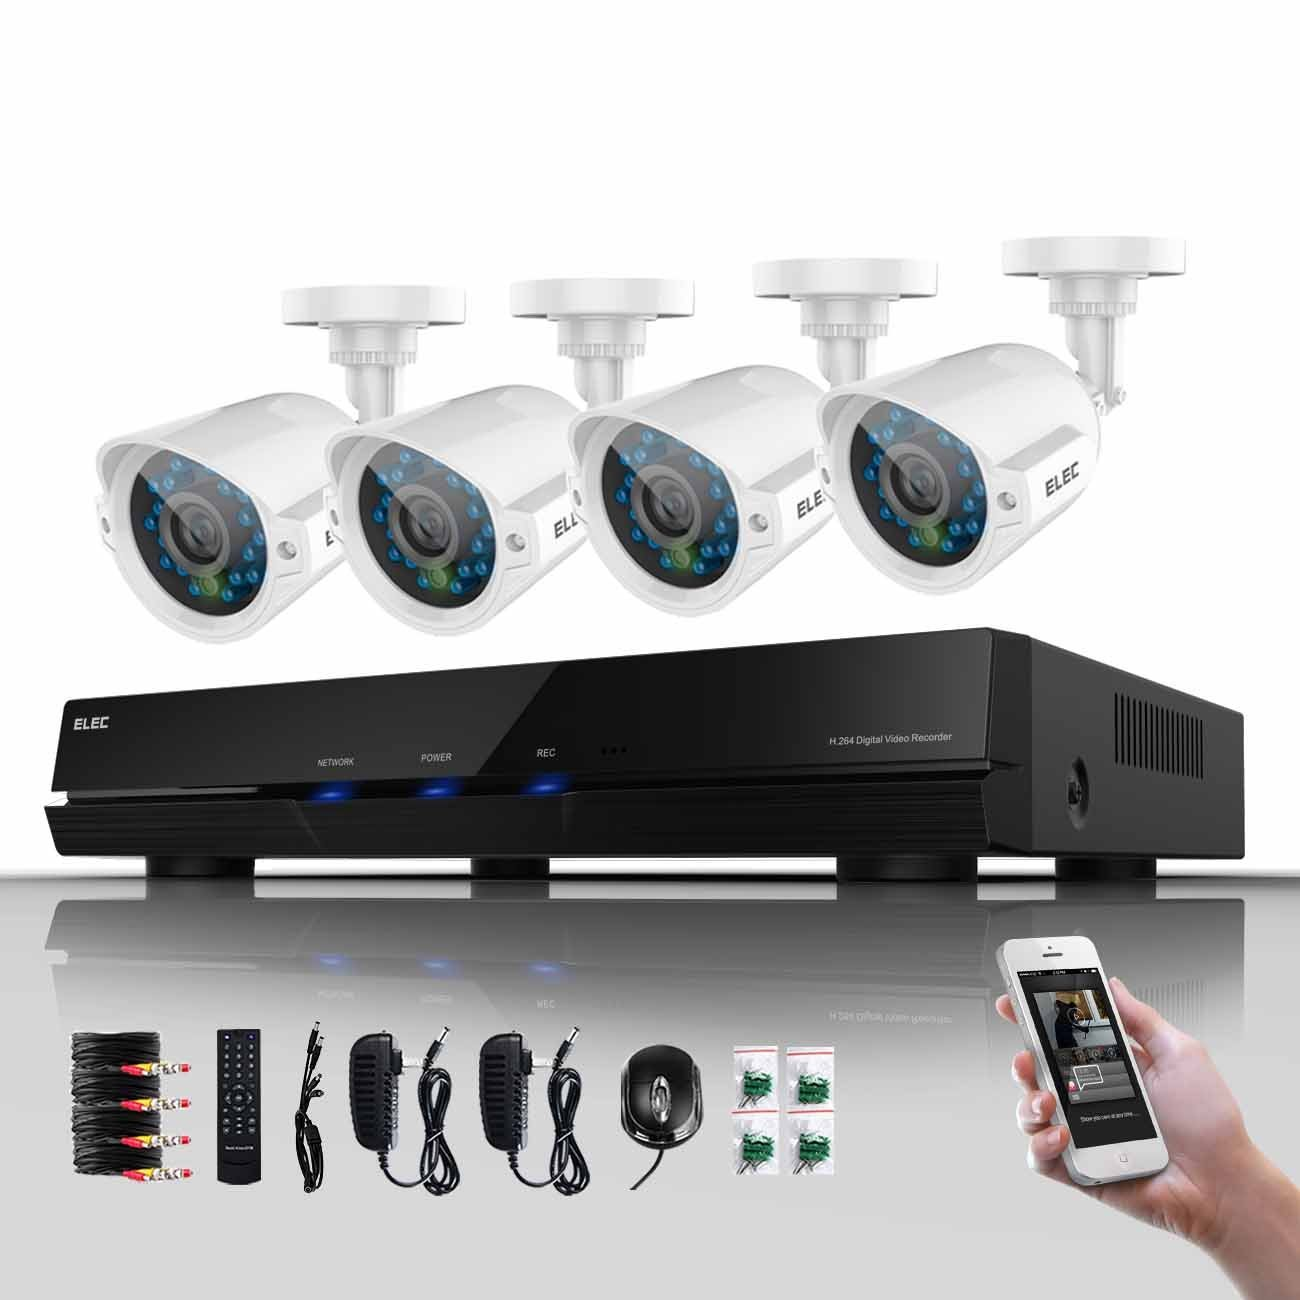 ELEC Night Vision Video Security